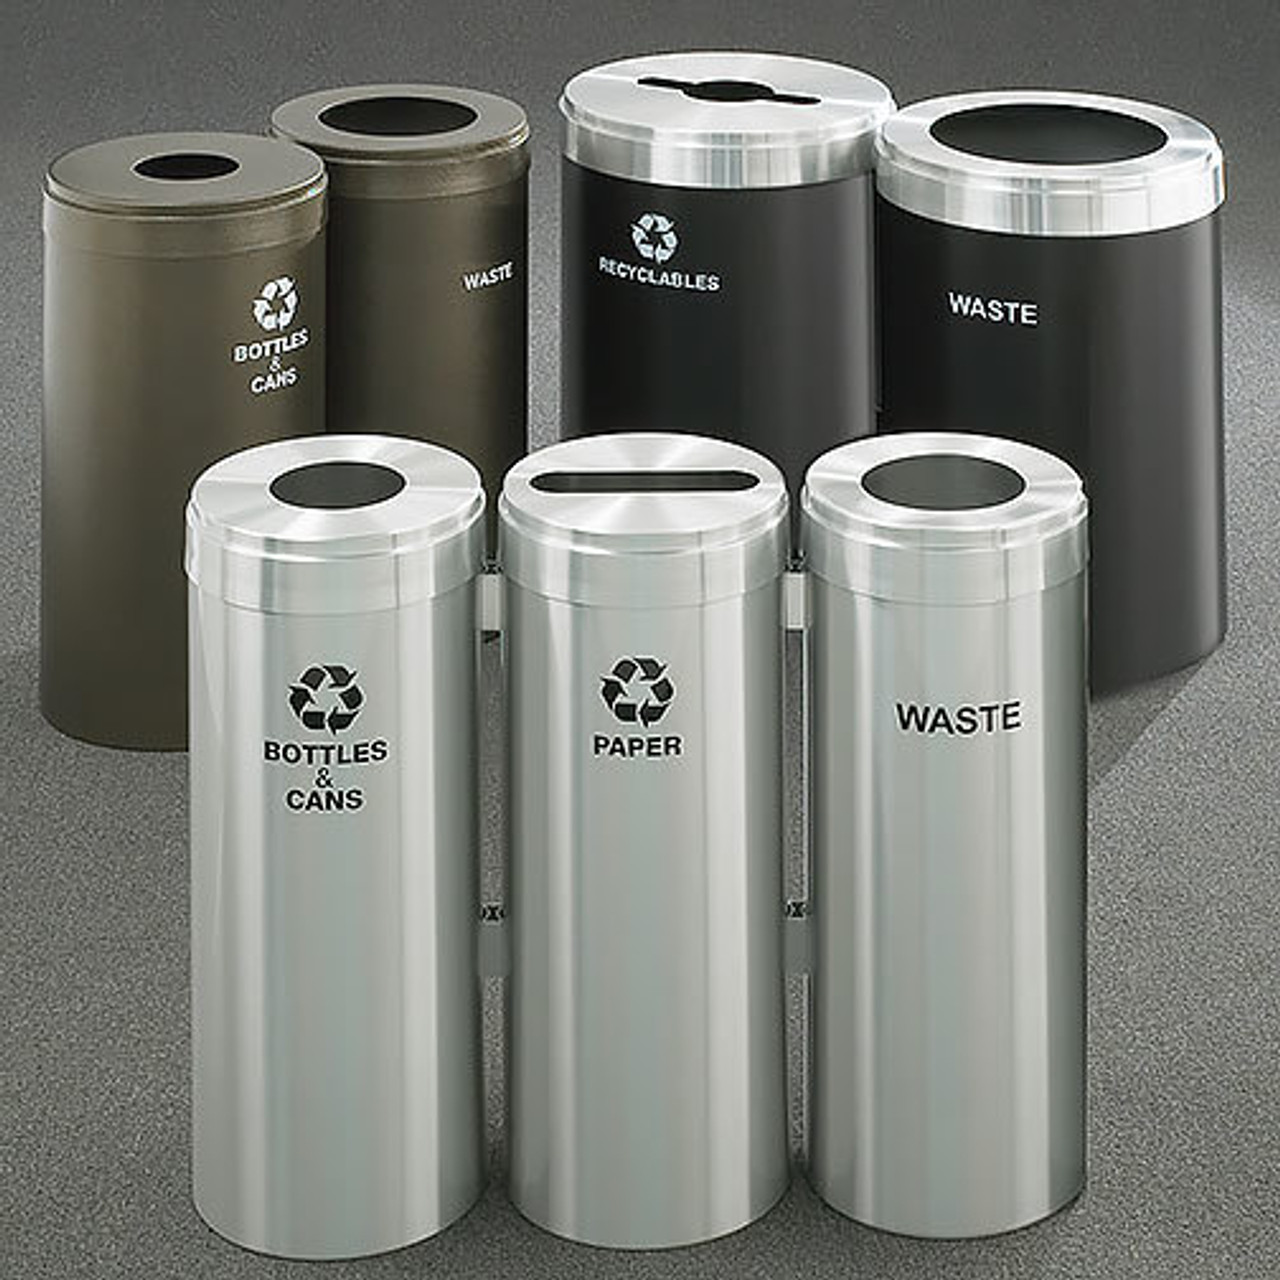 Glaro RecyclePro Value Connected Bins